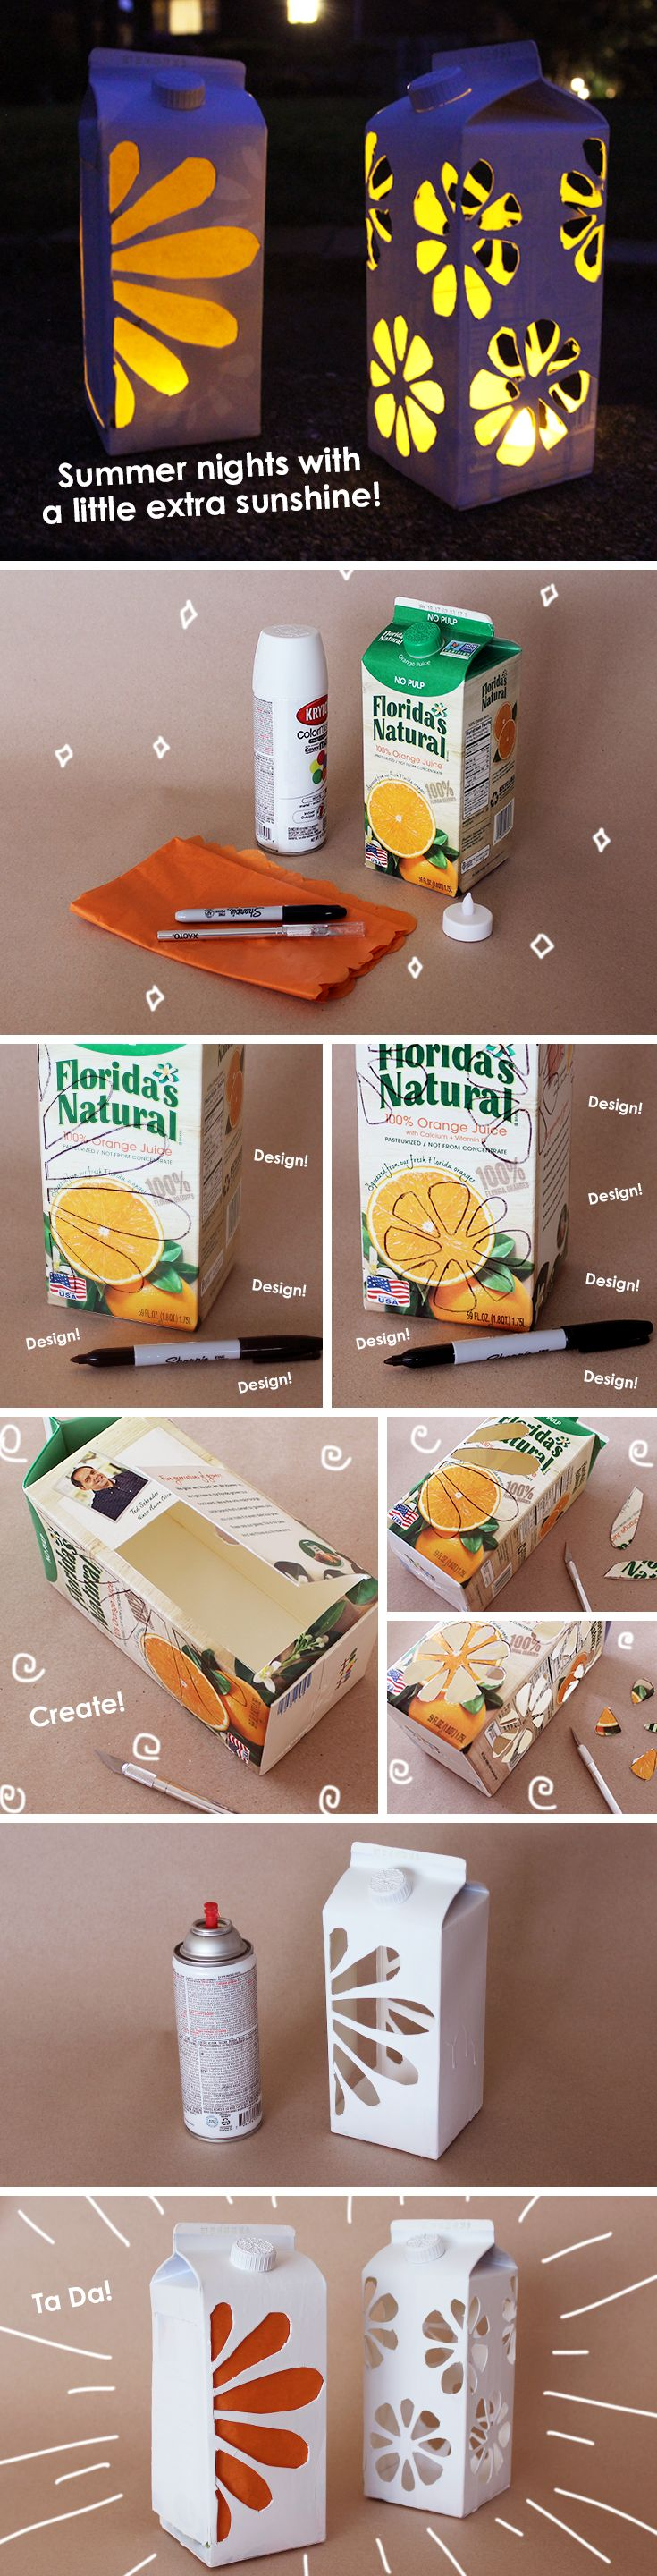 Brighten up those summer nights with this fun carton craft for both kids and adults to enjoy!